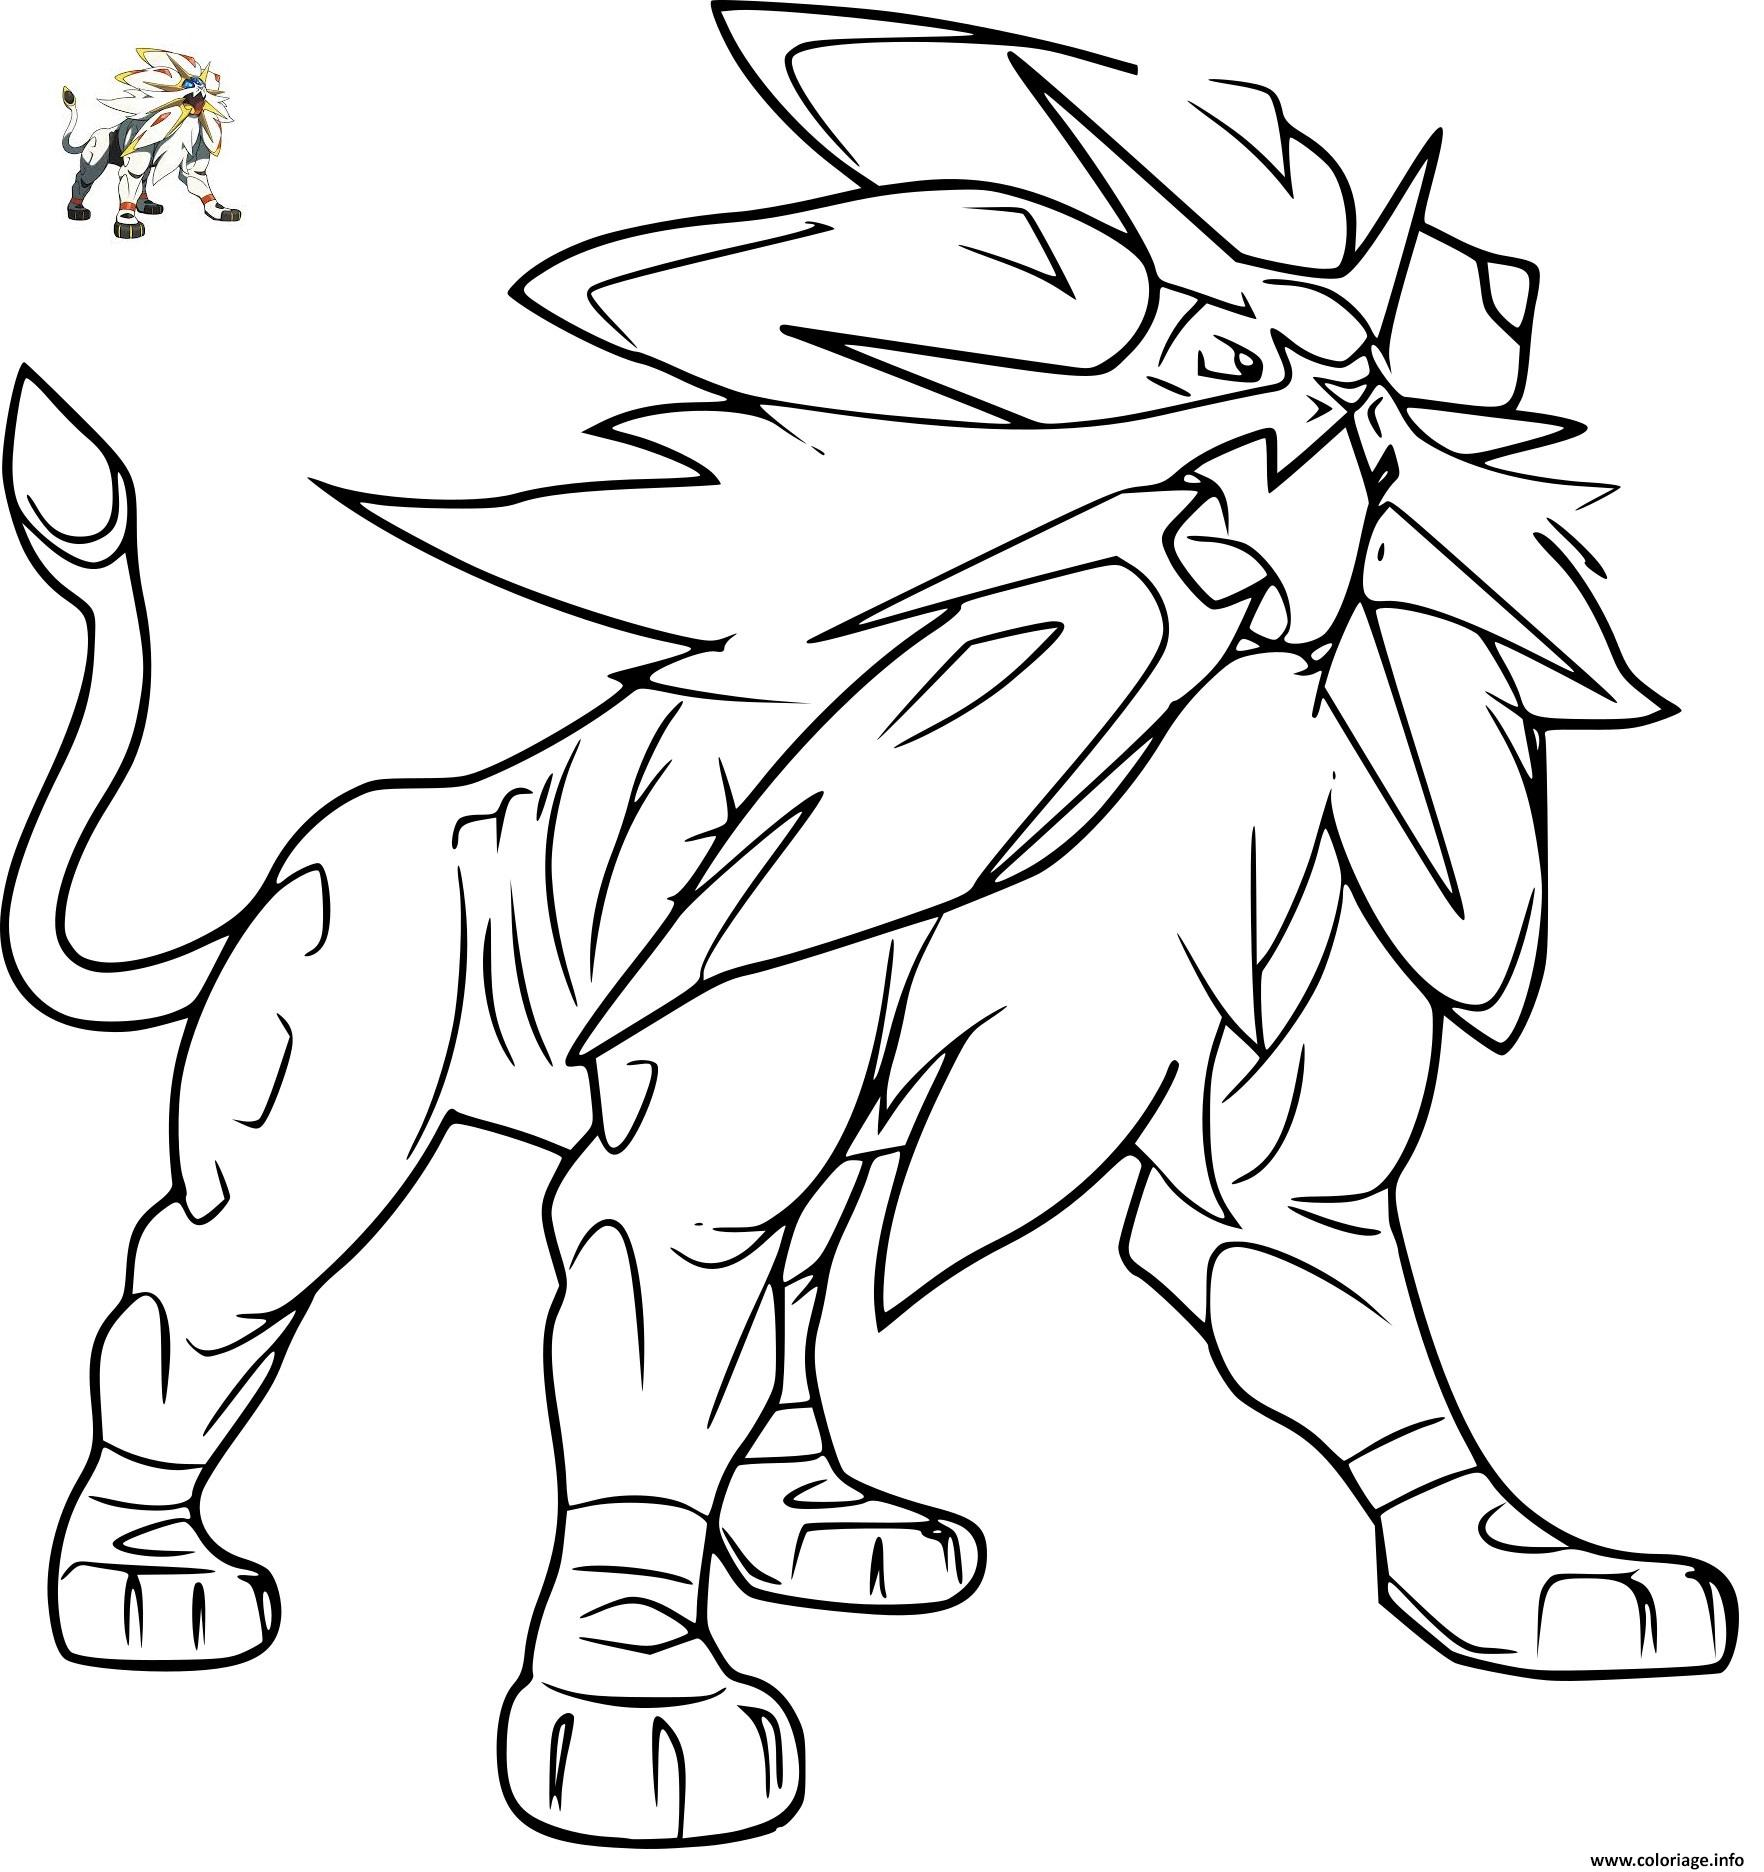 Coloriage pokemon solgaleo gx - Coloriage pokemon legendaire a imprimer ...